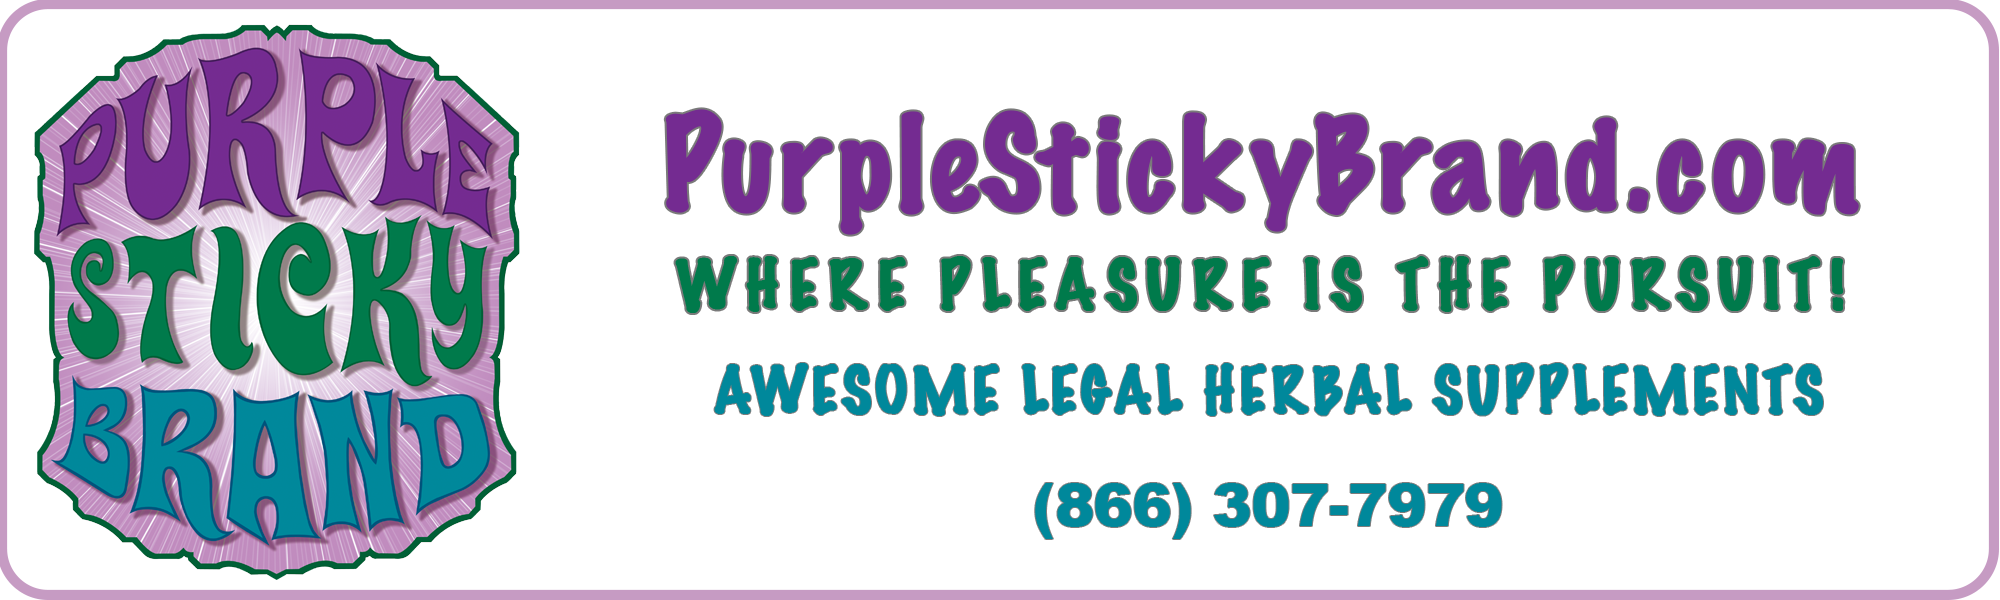 Purple Sticky  Brand - smoke shop wholesale products for new smoke shops- awesome legal herbal supplements from salvia to CBD and more for wholesale smokeshop products.Purple Sticky Brand Since 2001